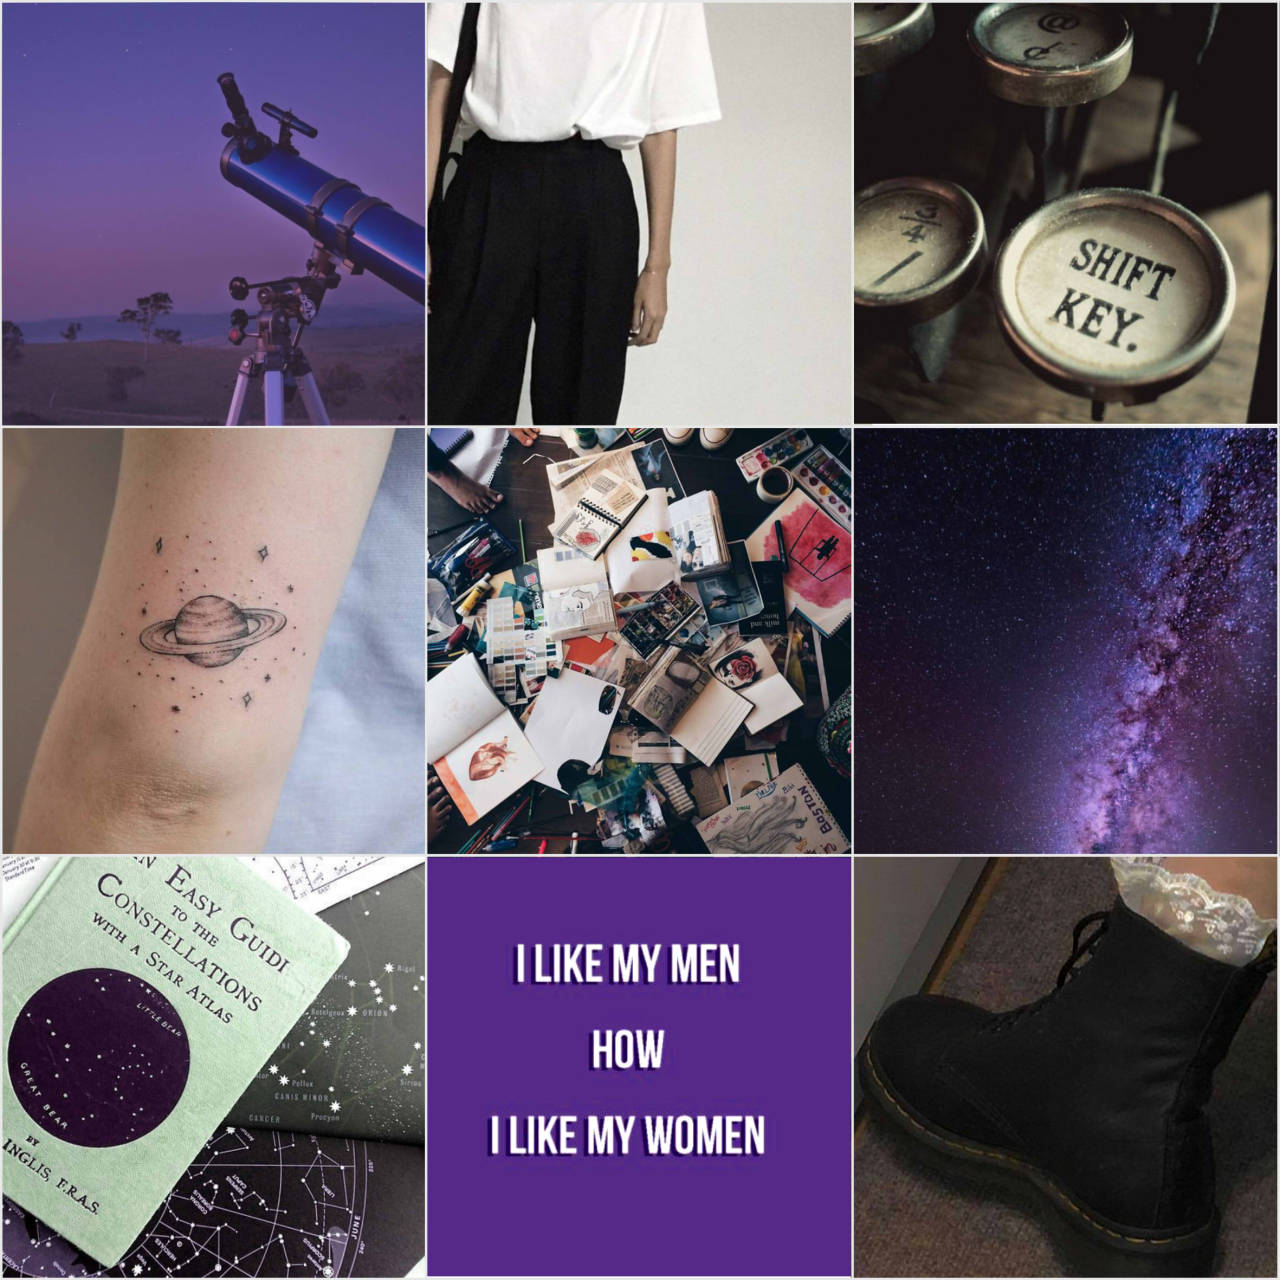 Bisexual Space Chaotic Academia for @ravenkake  Request always welcome! #bisexual#bisexual aesthetic#aesthetic#moodboard#bisexual moodboard#chaotic academia#academia moodboard #I HOPE YOU LIKE IT HUN! #request